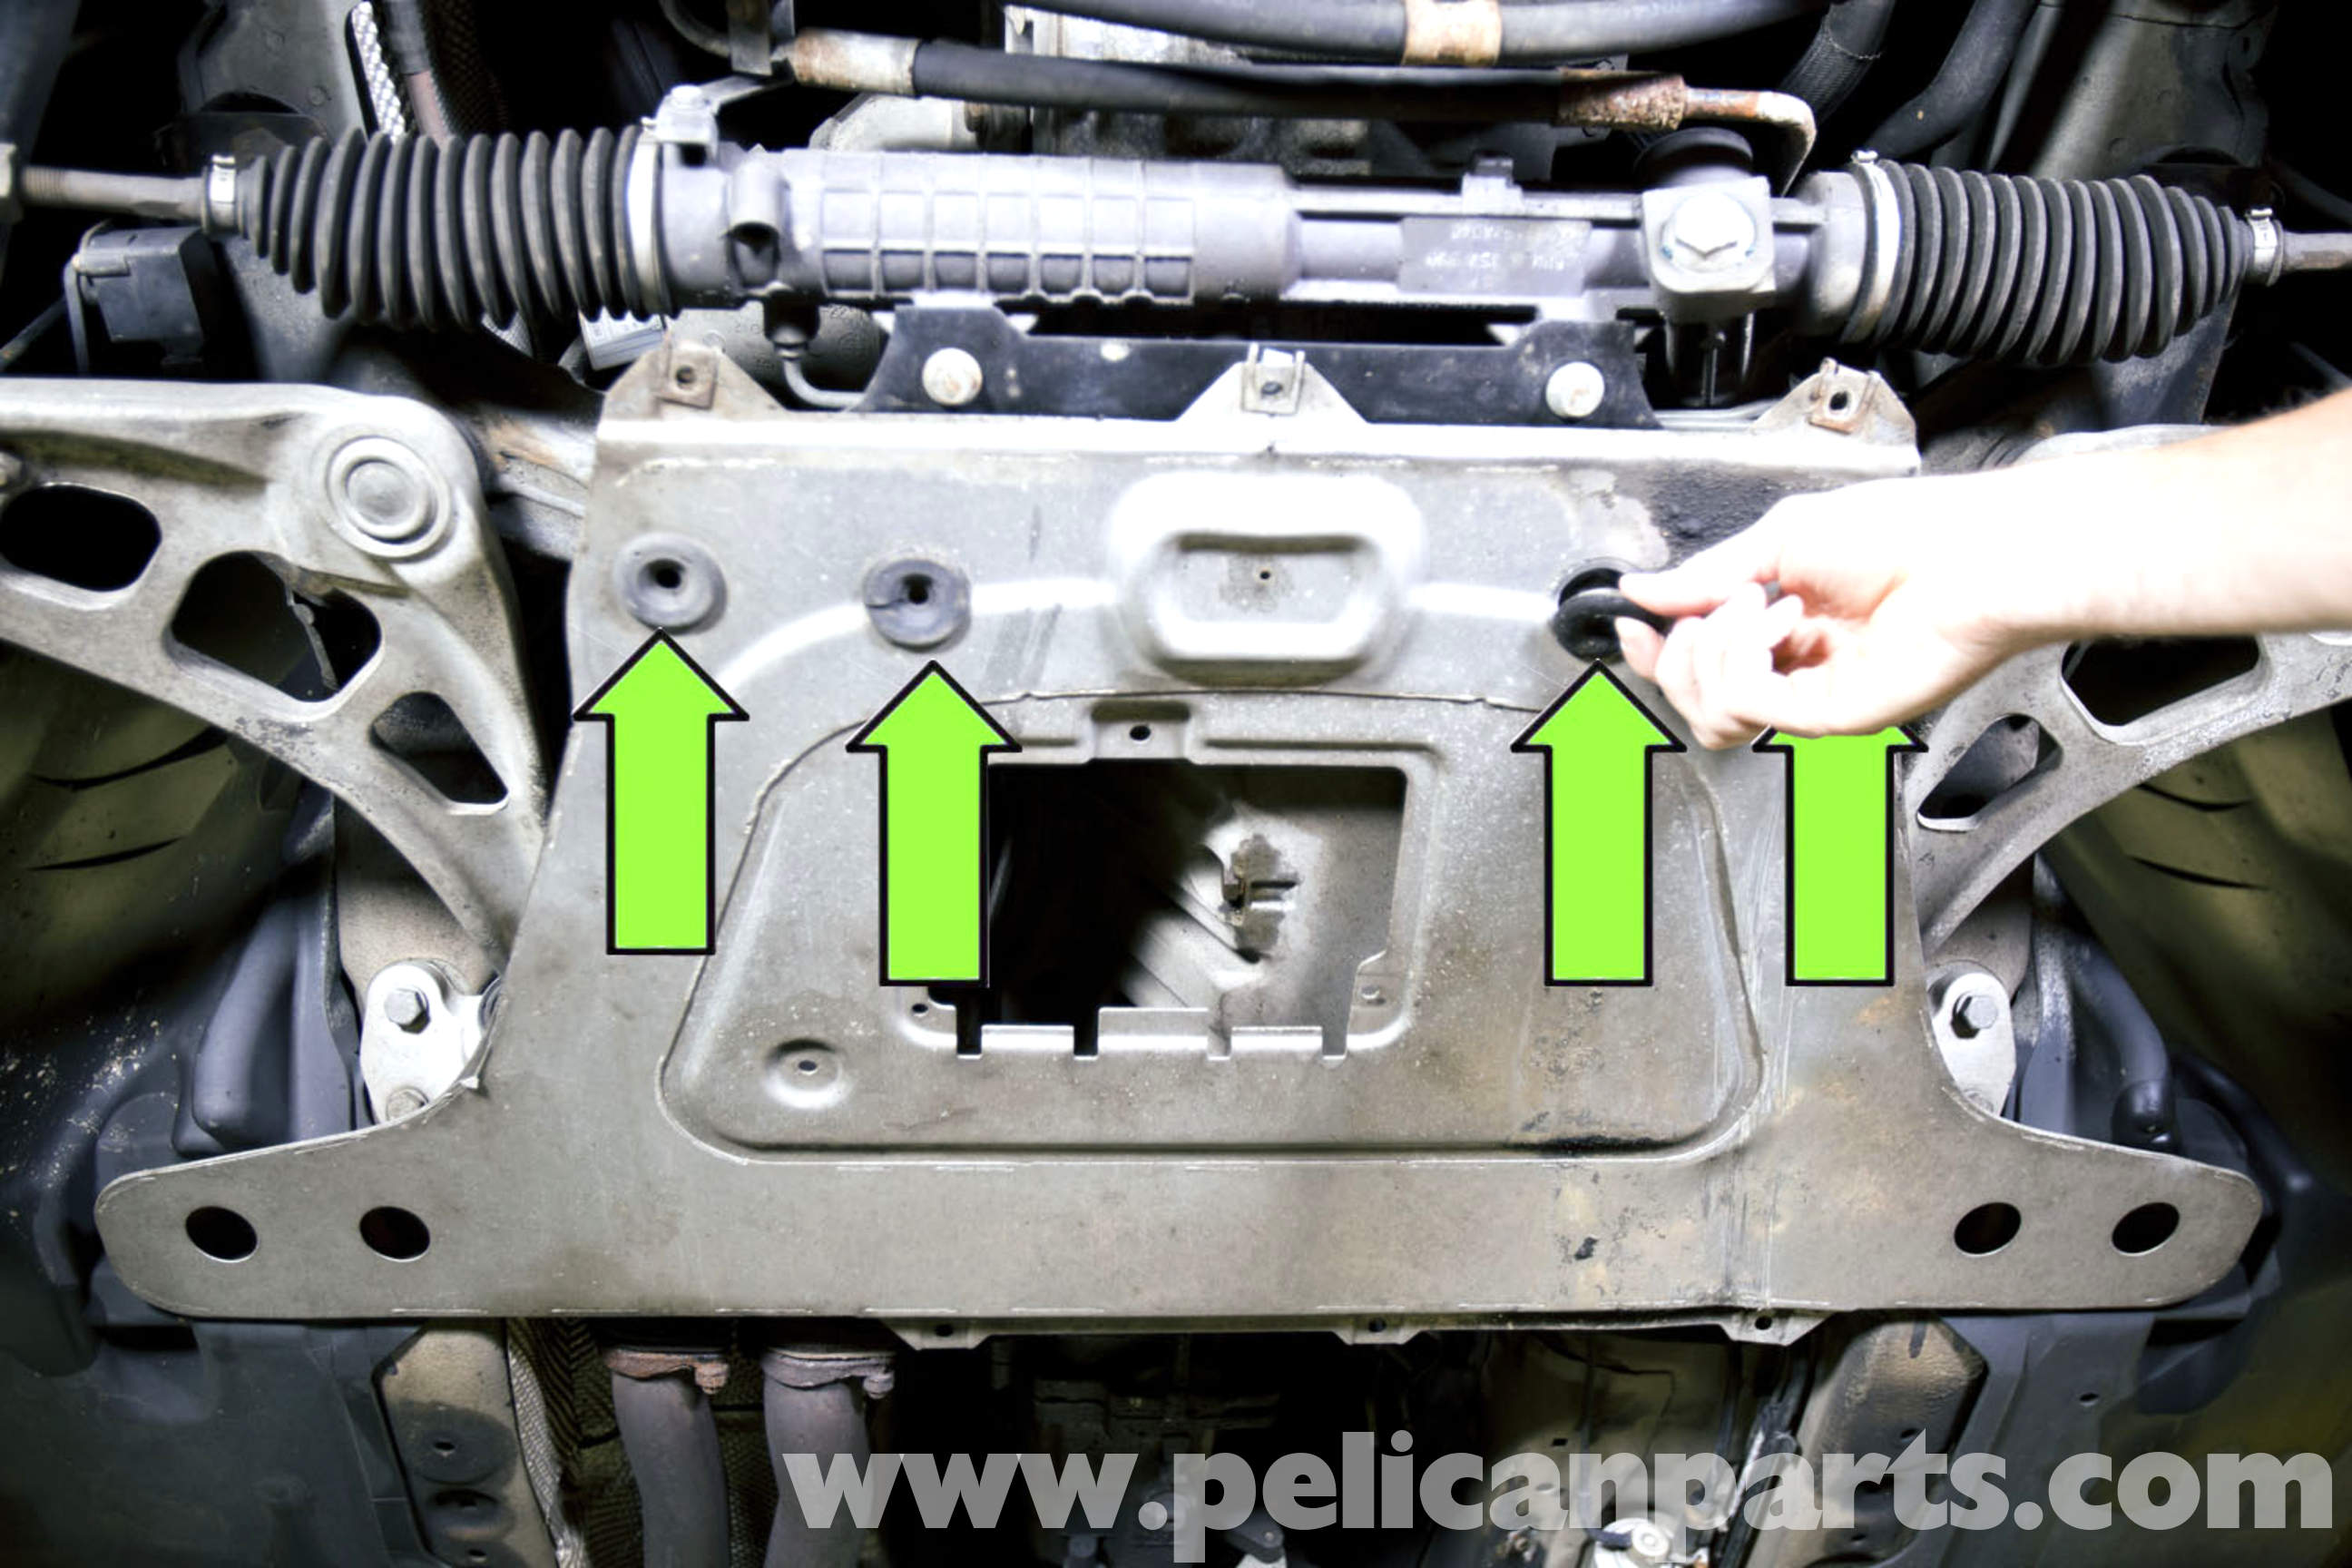 Bmw 325ci Engine Diagram Manual Of Wiring 2001 330ci E46 Splash Shield And Plate Removal 325i 2003 2004